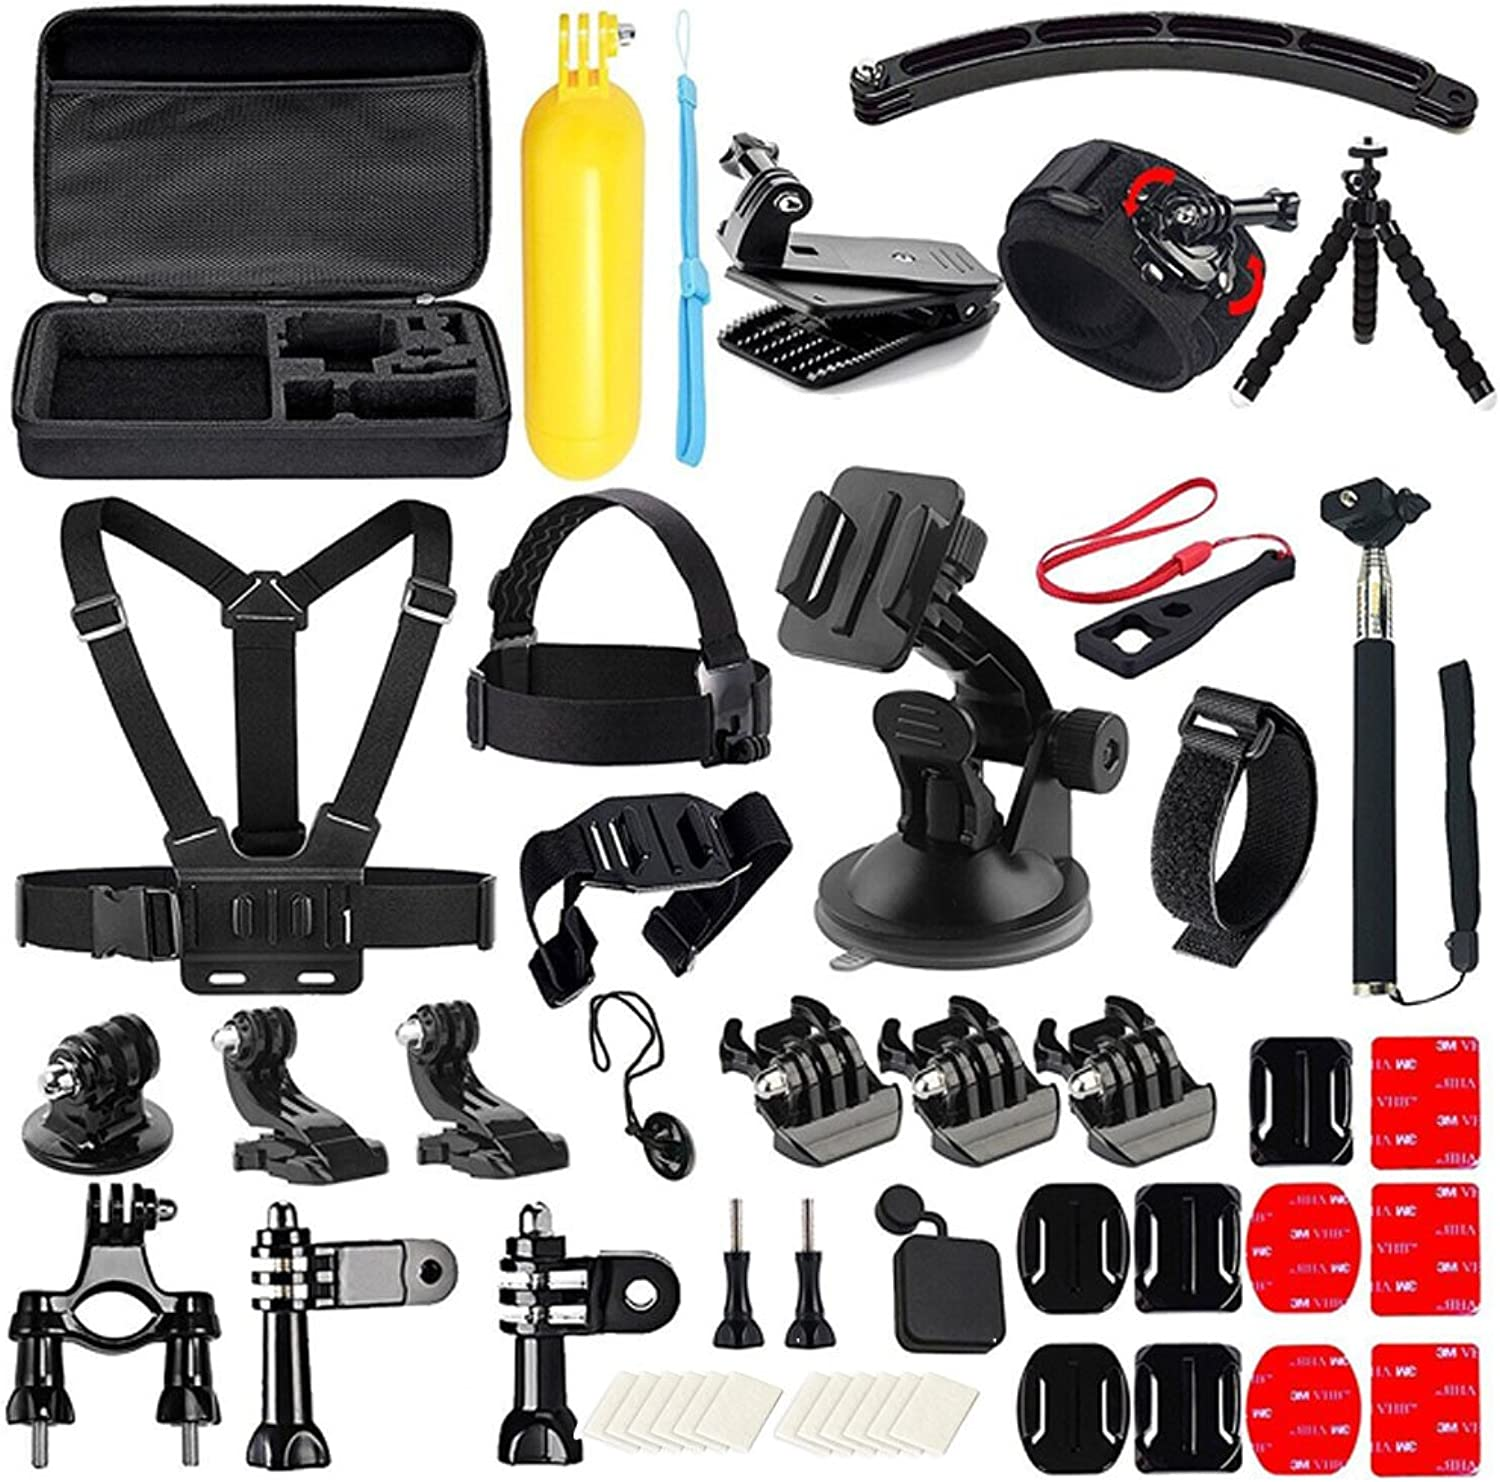 Hecaba Accessory Kit for Gopro 50 in 1 Multi-Function Foldable for Action Camera Gopro 6 Gopro 5 Xiaomi Camera Gopro 4 Gopro 3 Diving Surfing Ski Snowboard Velcro Neoprene ABS SJCAM Android Cellphone